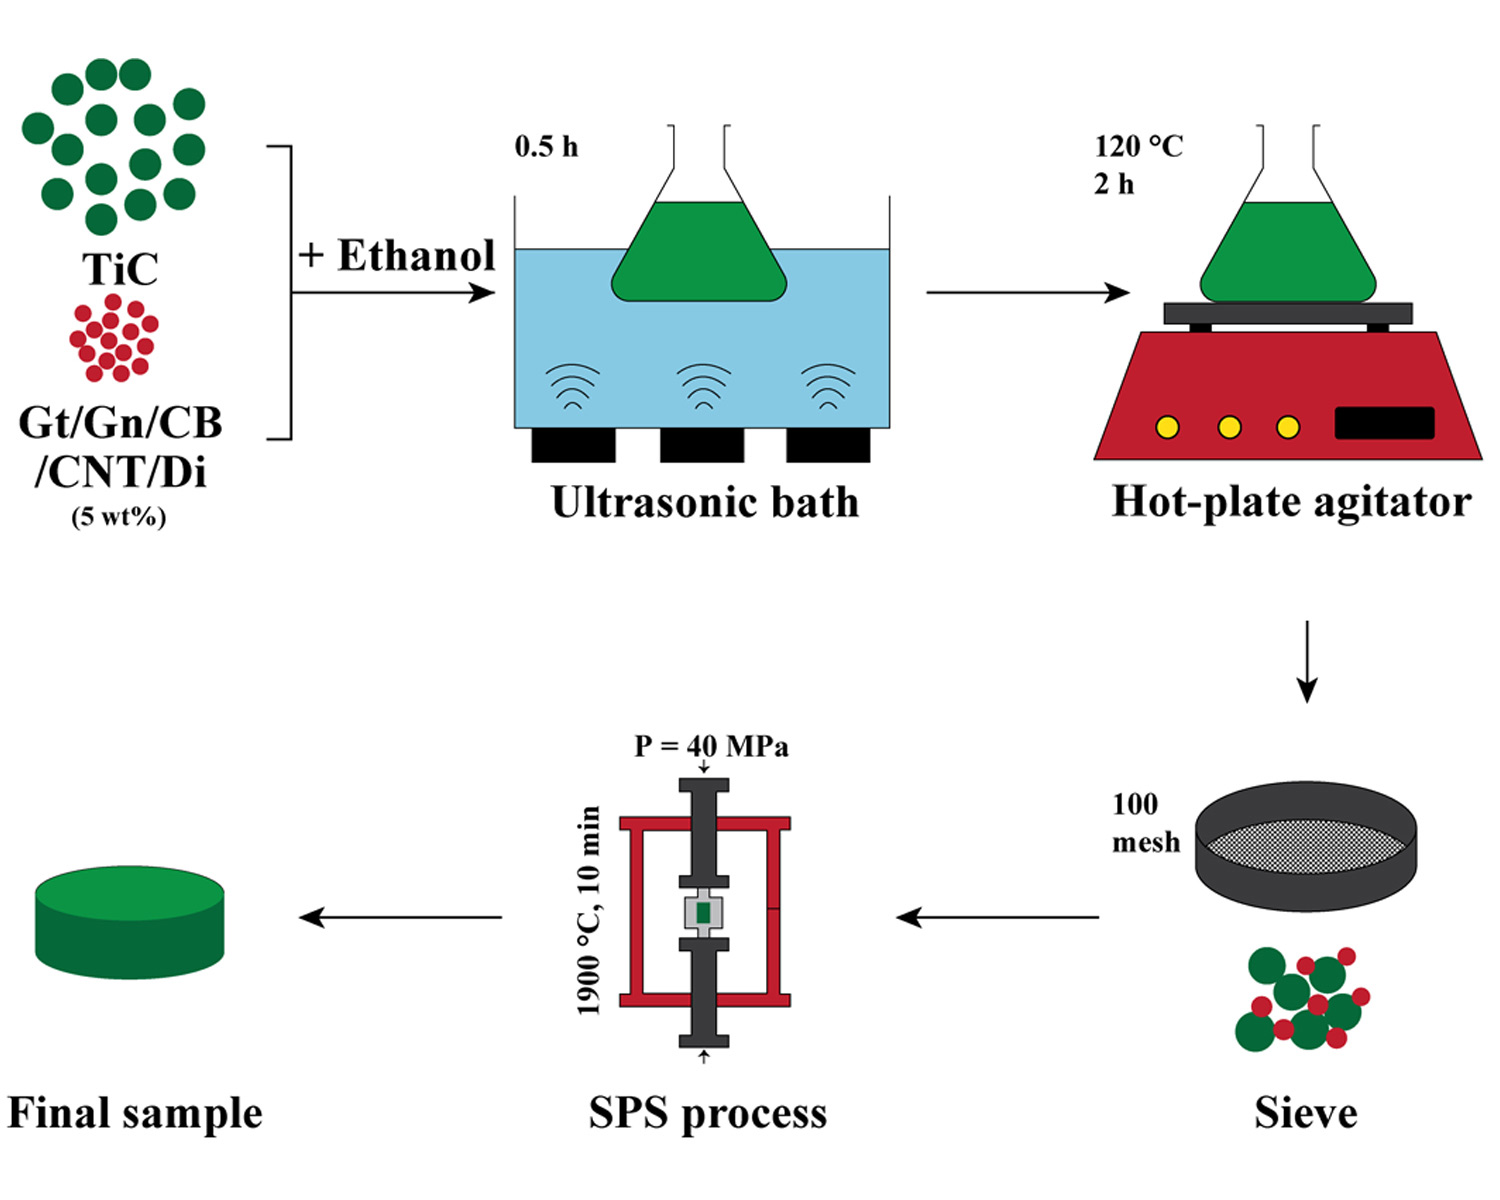 Effects of carbon nano-additives on characteristics of TiC ceramics prepared by field-assisted sintering